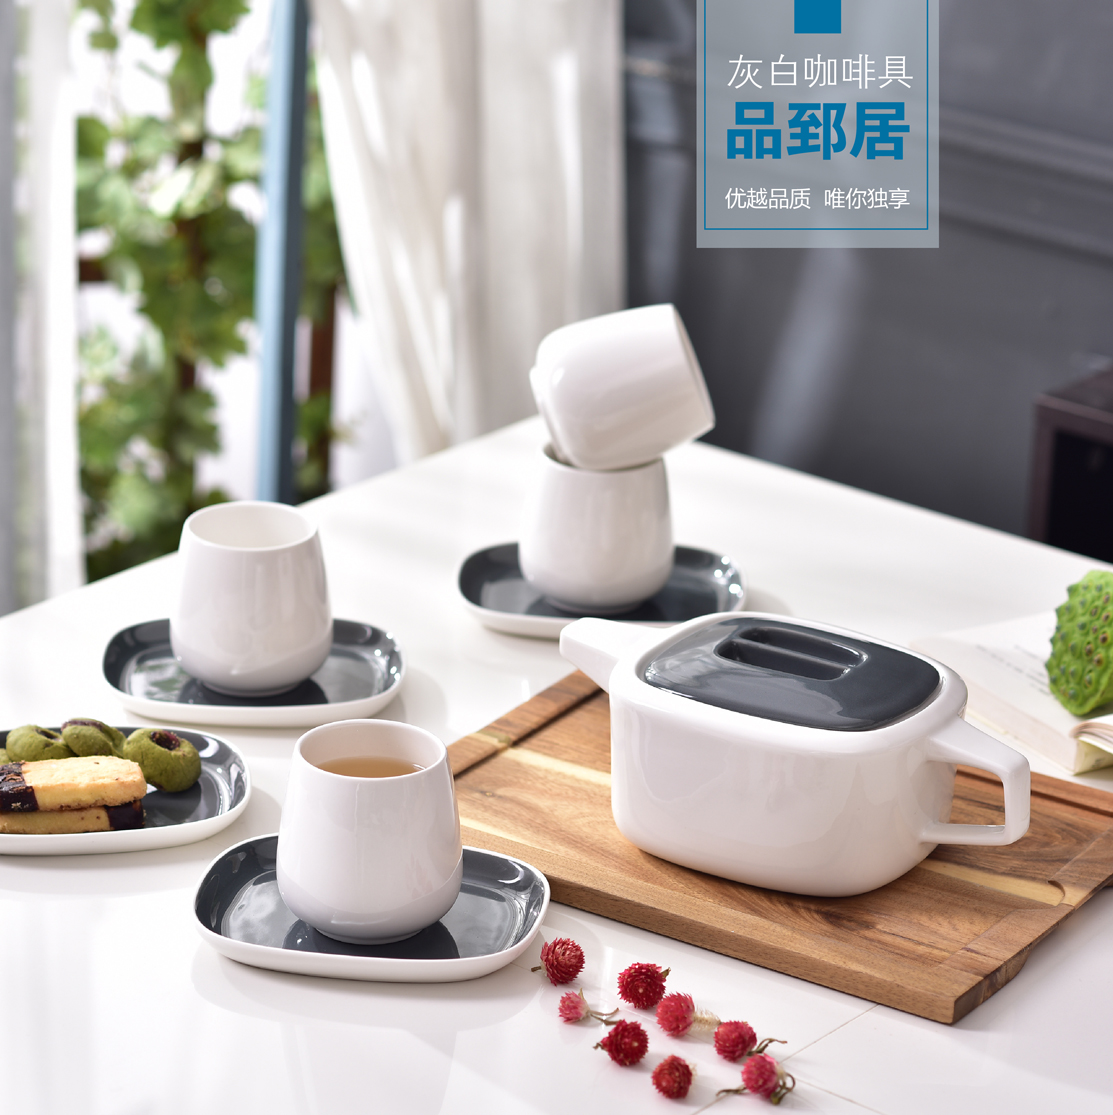 Kitchen Accessories China: Online Buy Wholesale English Teapots From China English